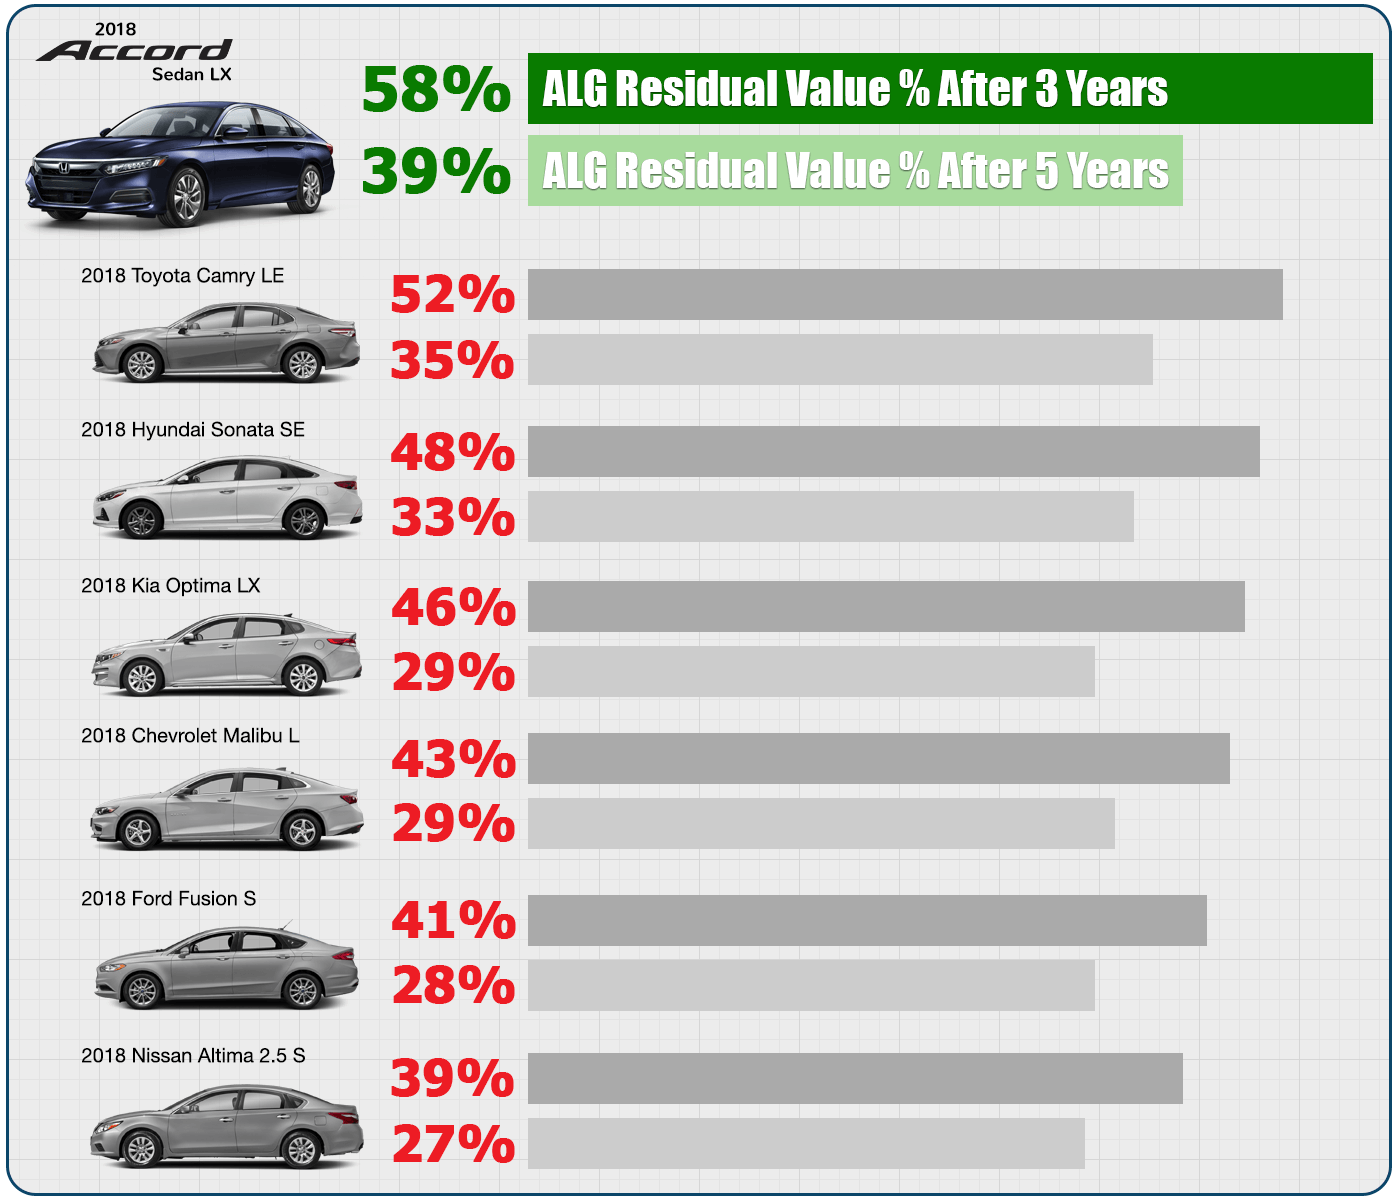 2018 March ALG Residual Value Percentages